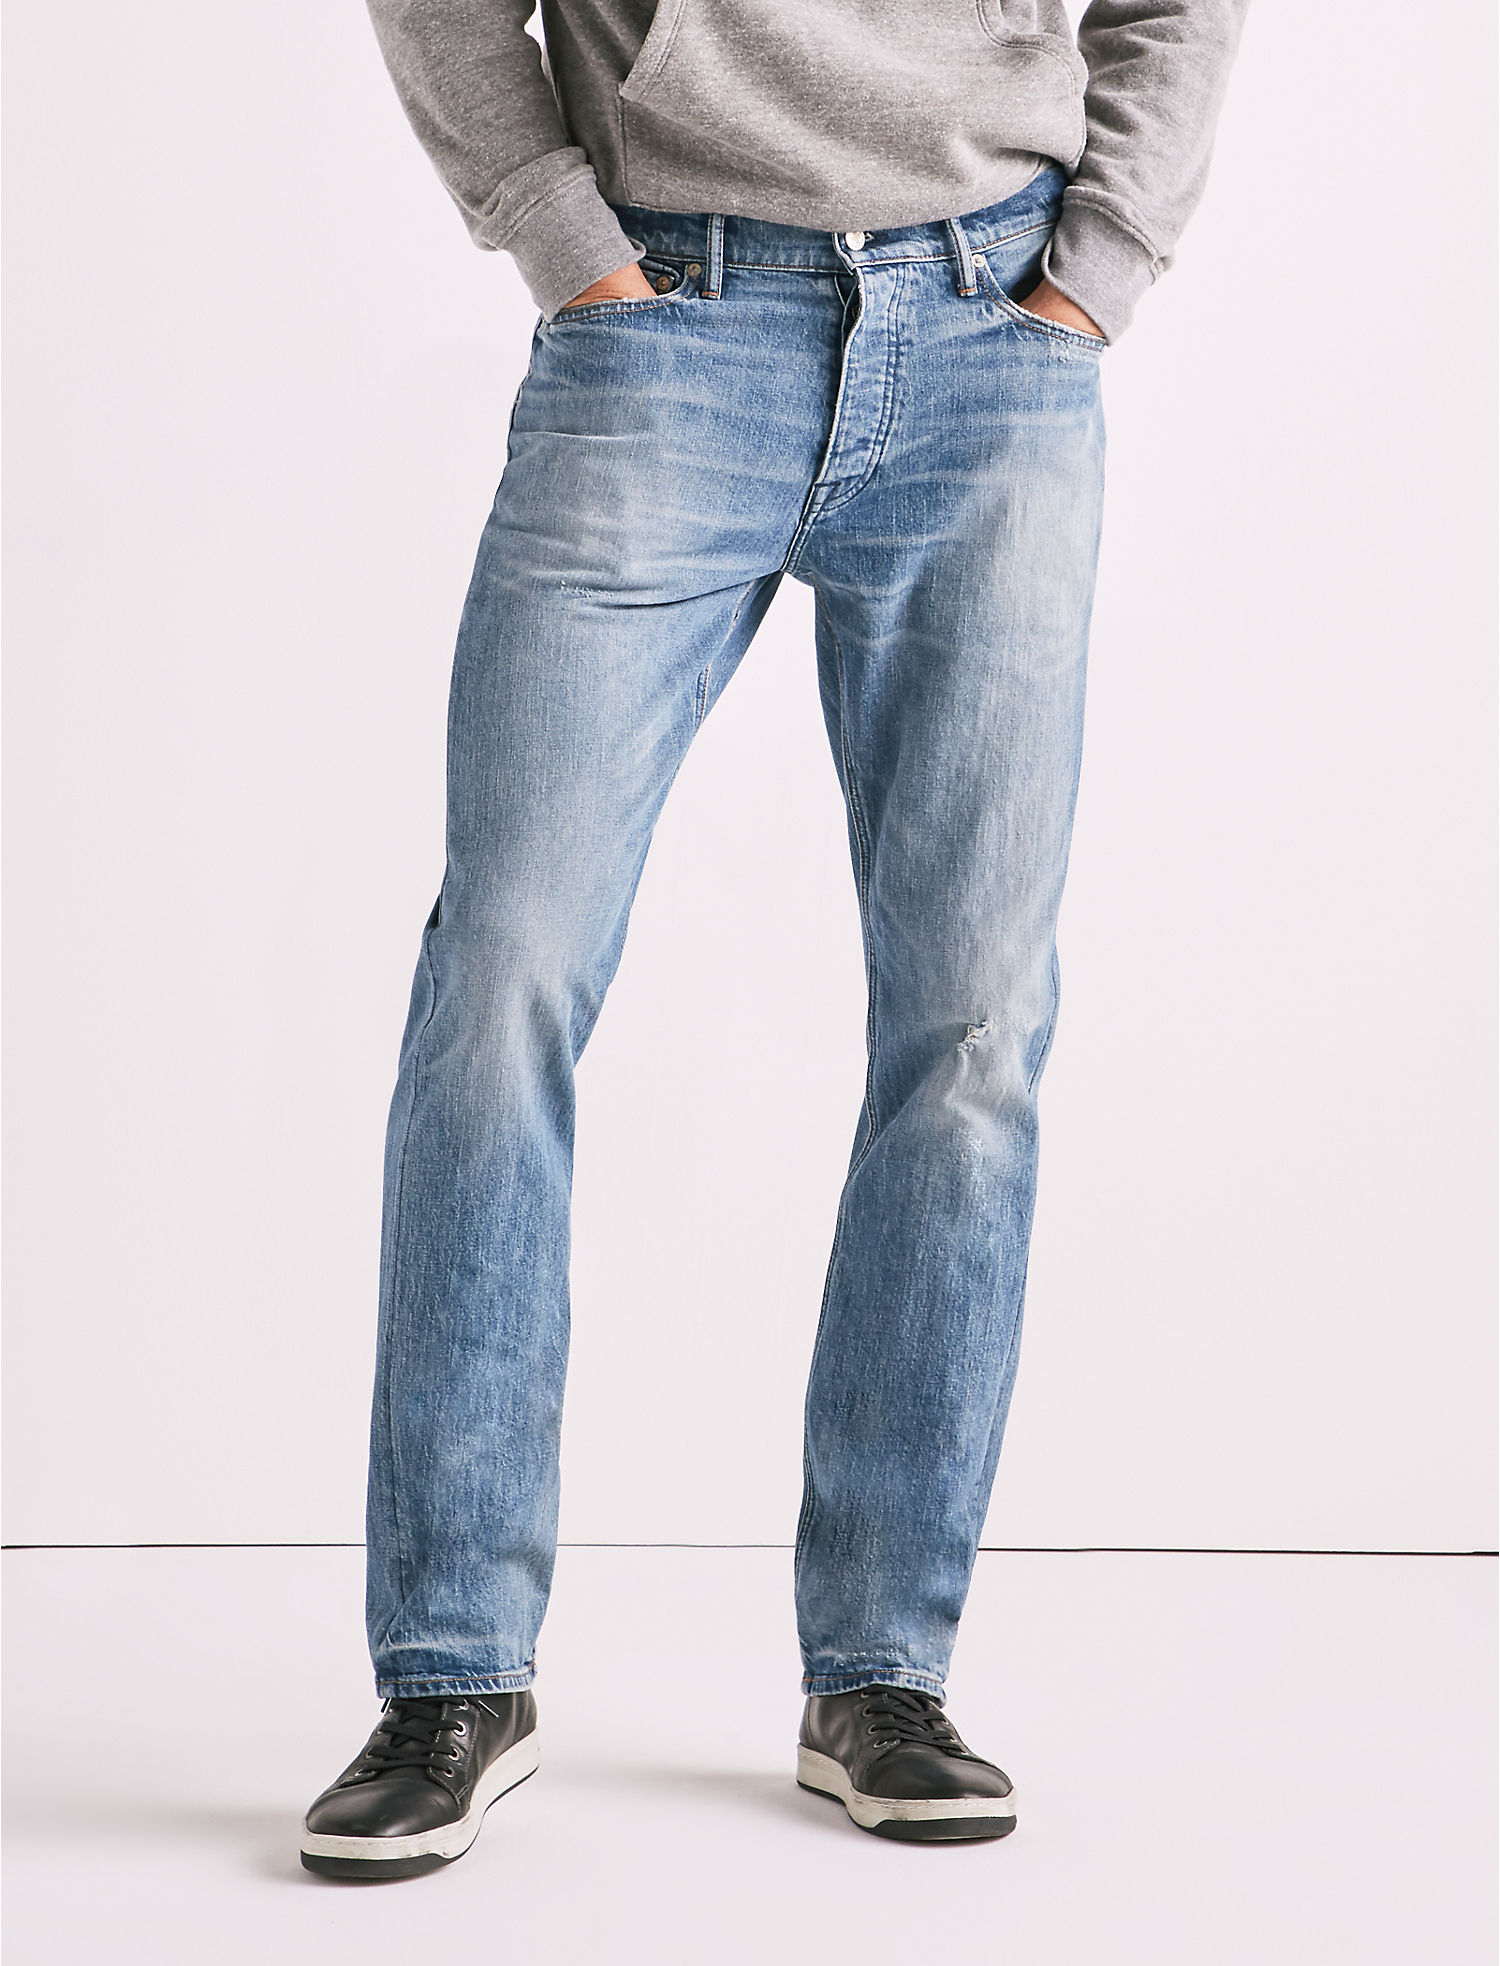 059d1b22ed Made In L.A. 410 Athletic Slim Jean at Lucky Brand Jeans in Studio City